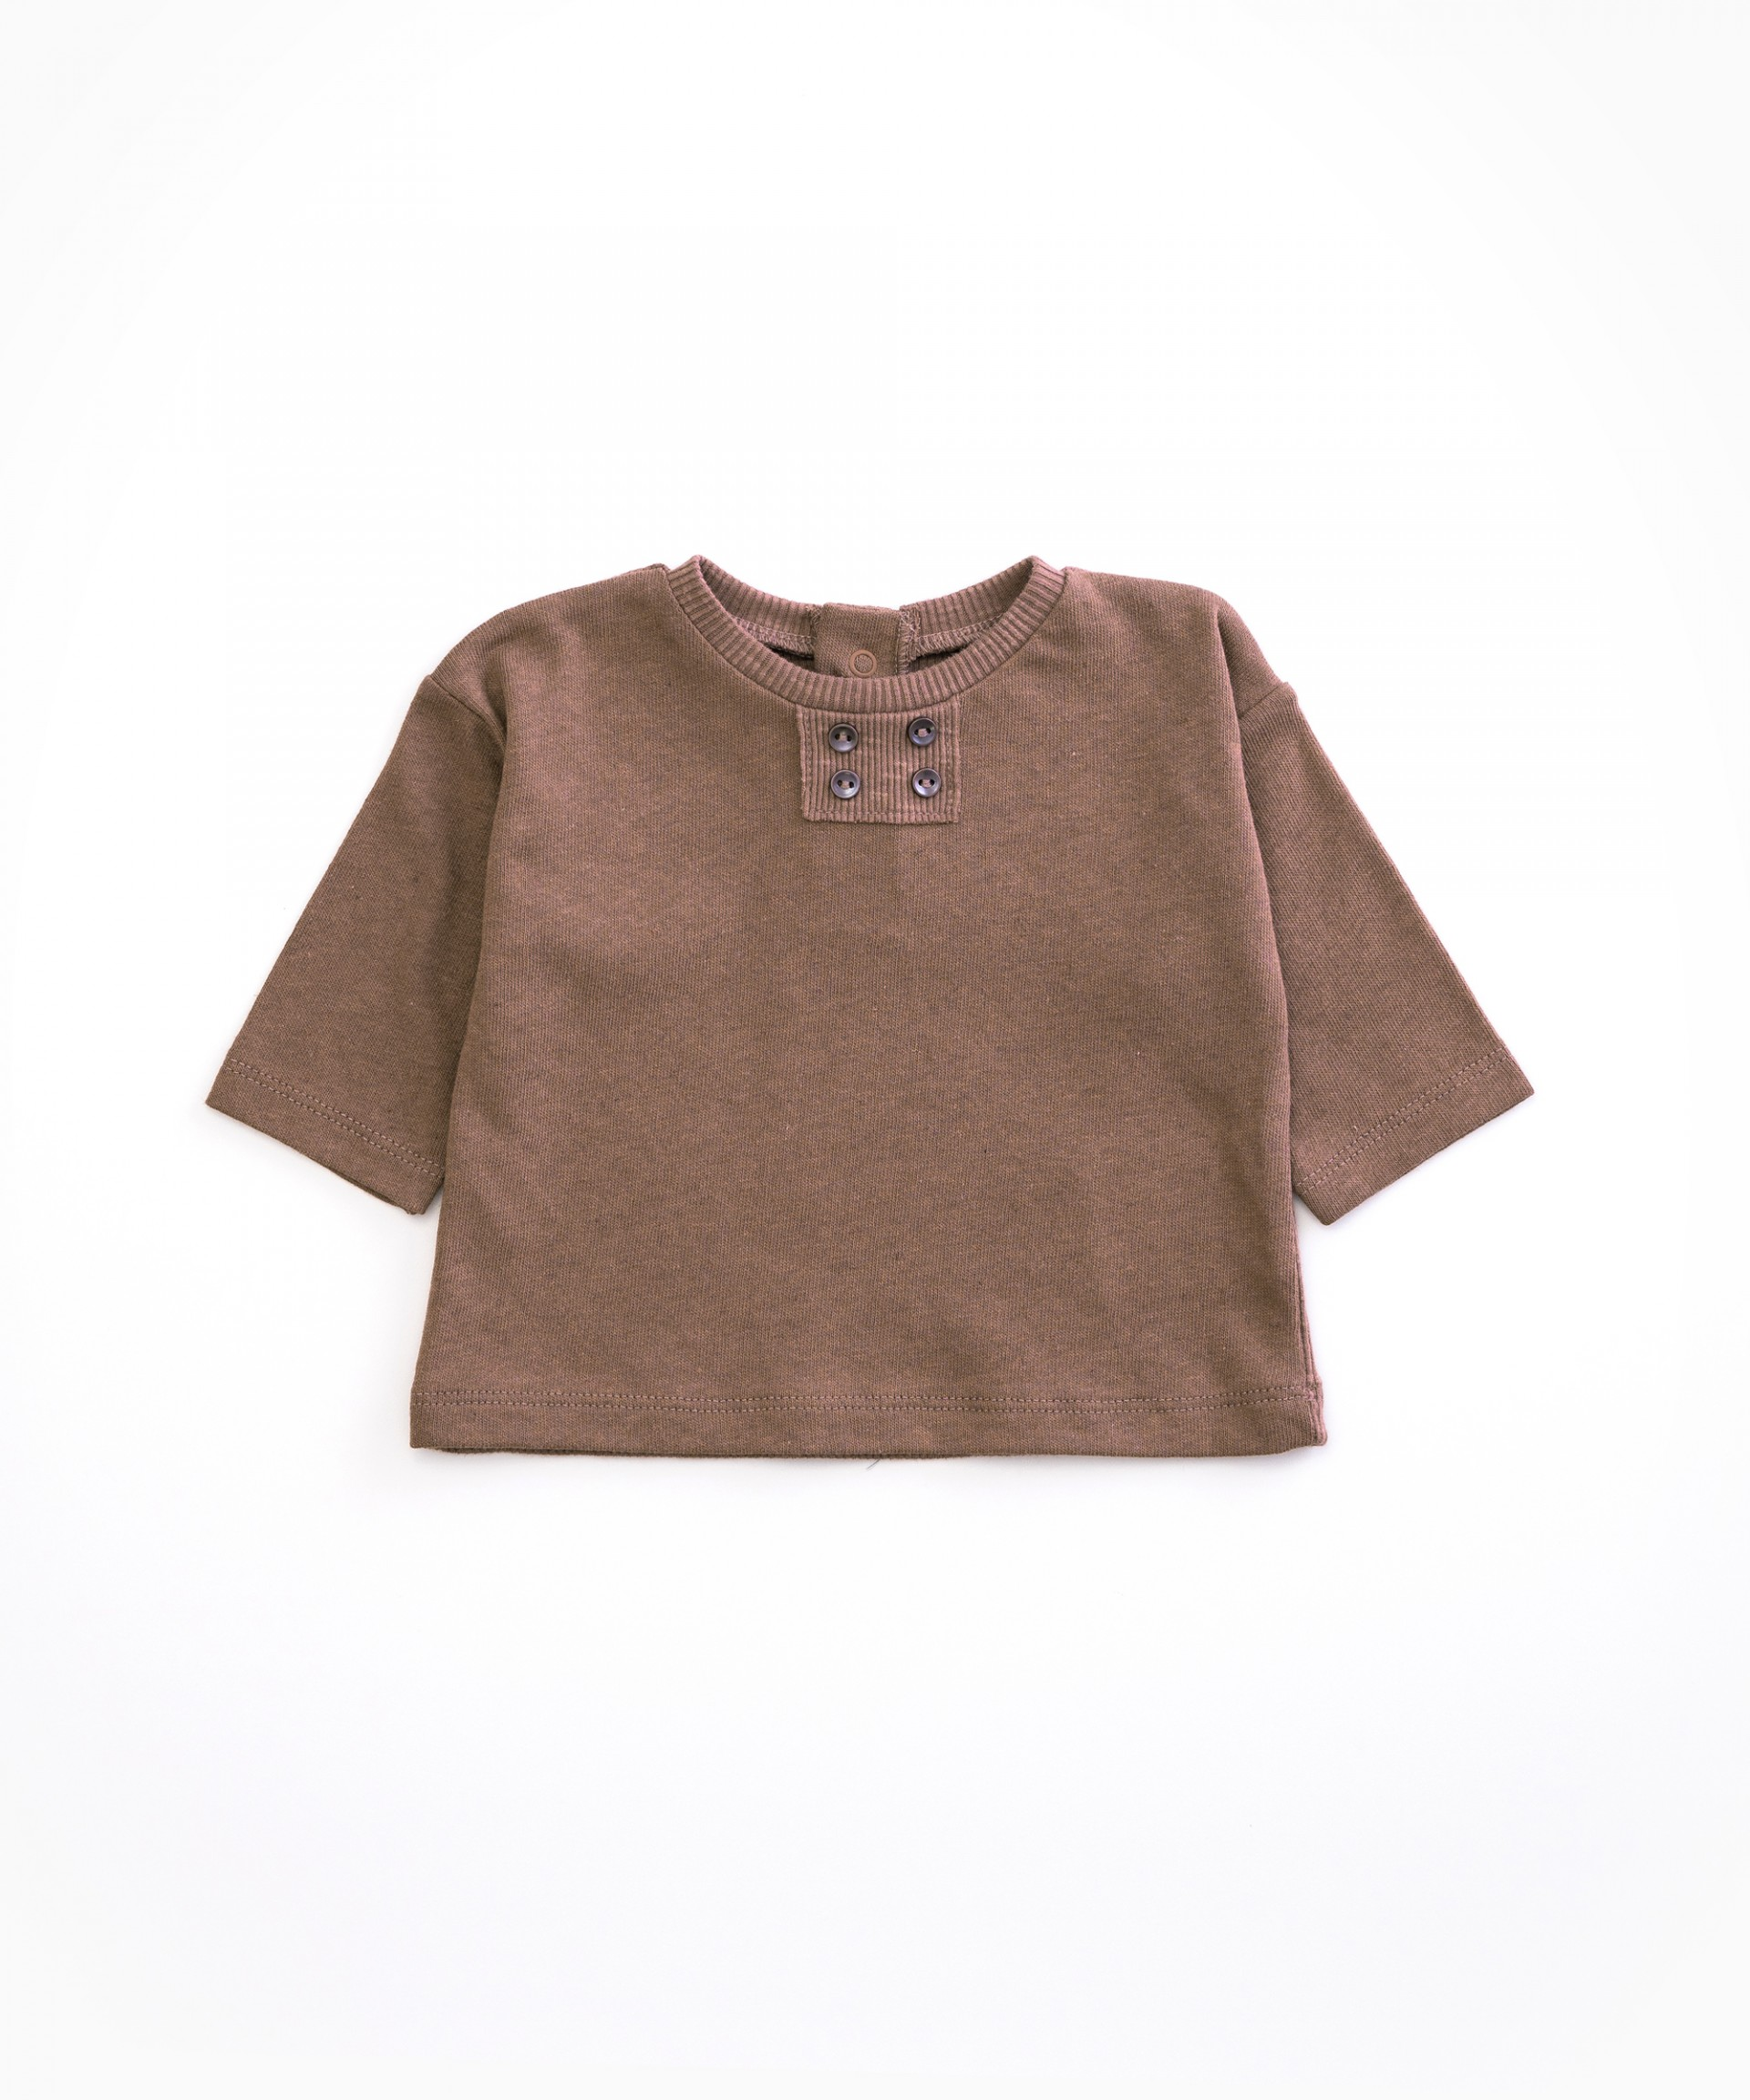 T-shirt in organic cotton and linen | Woodwork